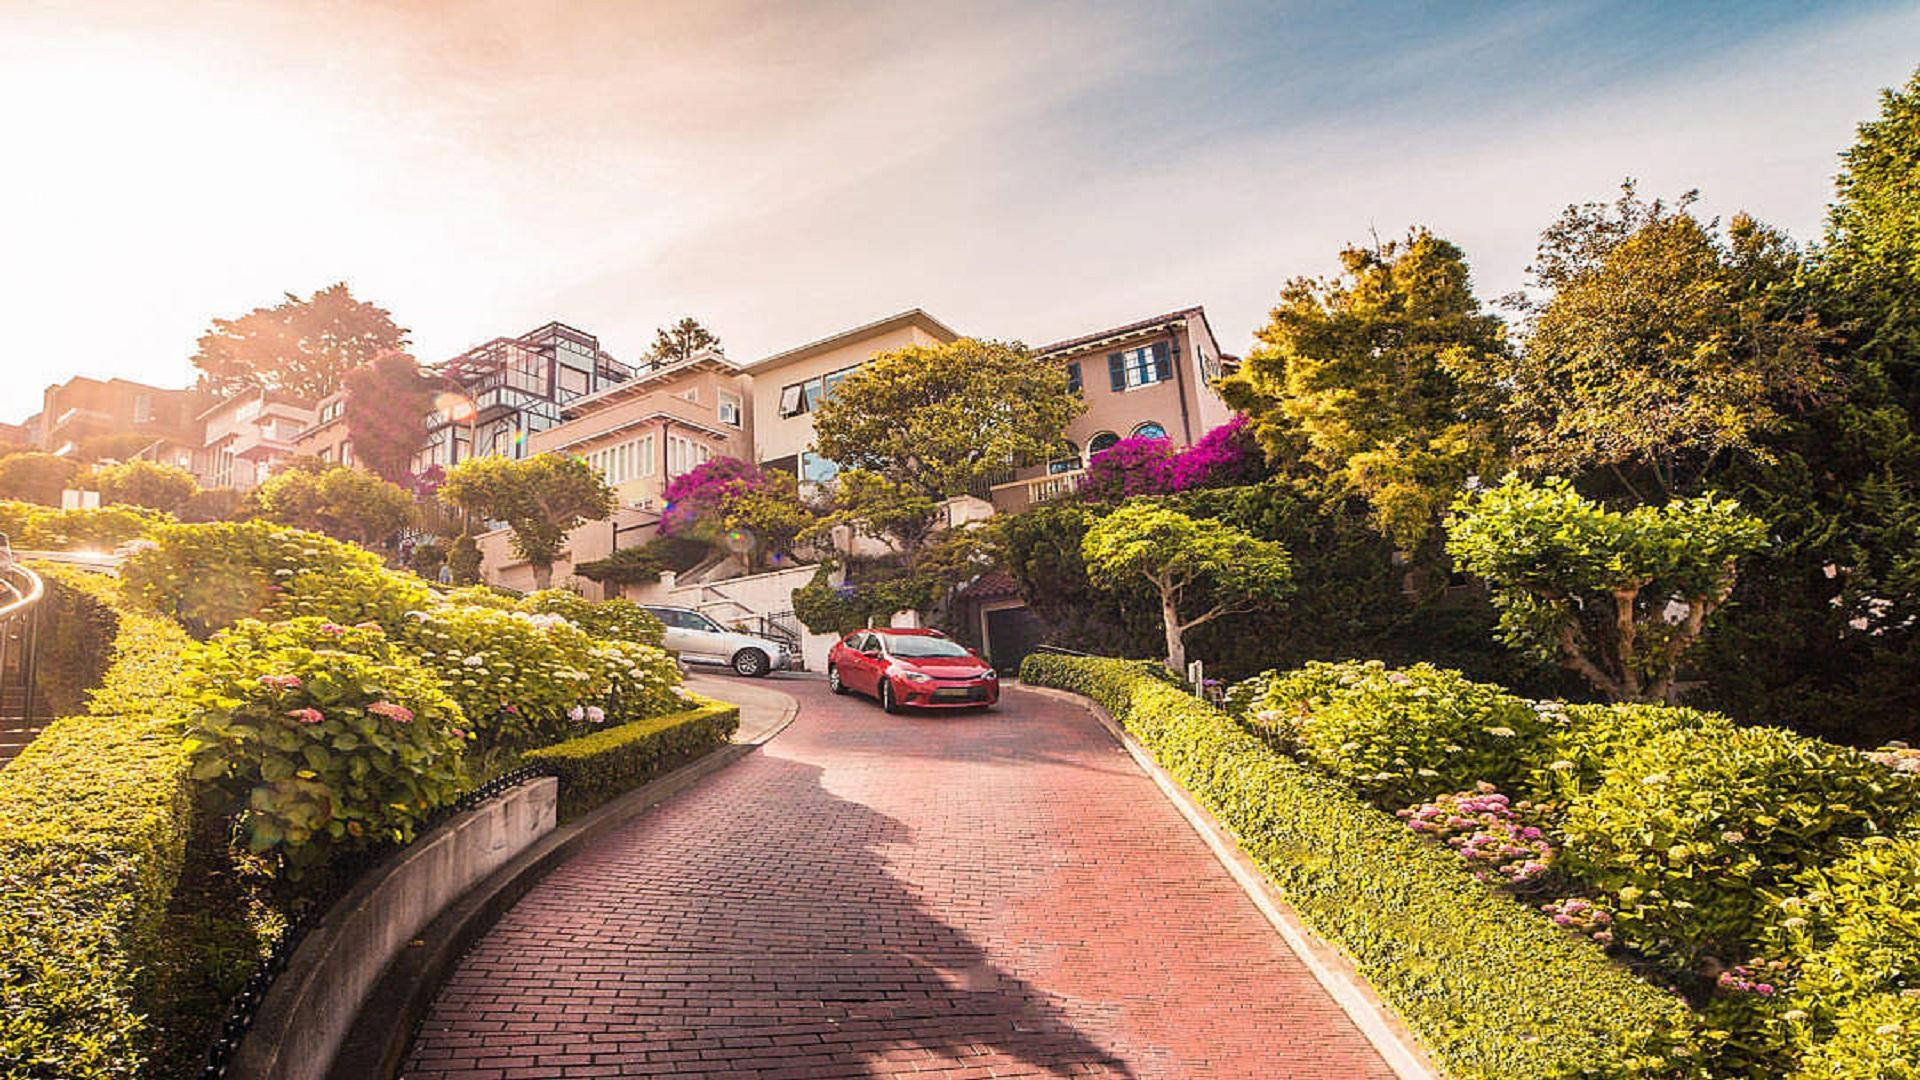 LOMBARD STREET IN SAN FRANCISCO, CALIFORNIA [1920x1080] : wallpapers